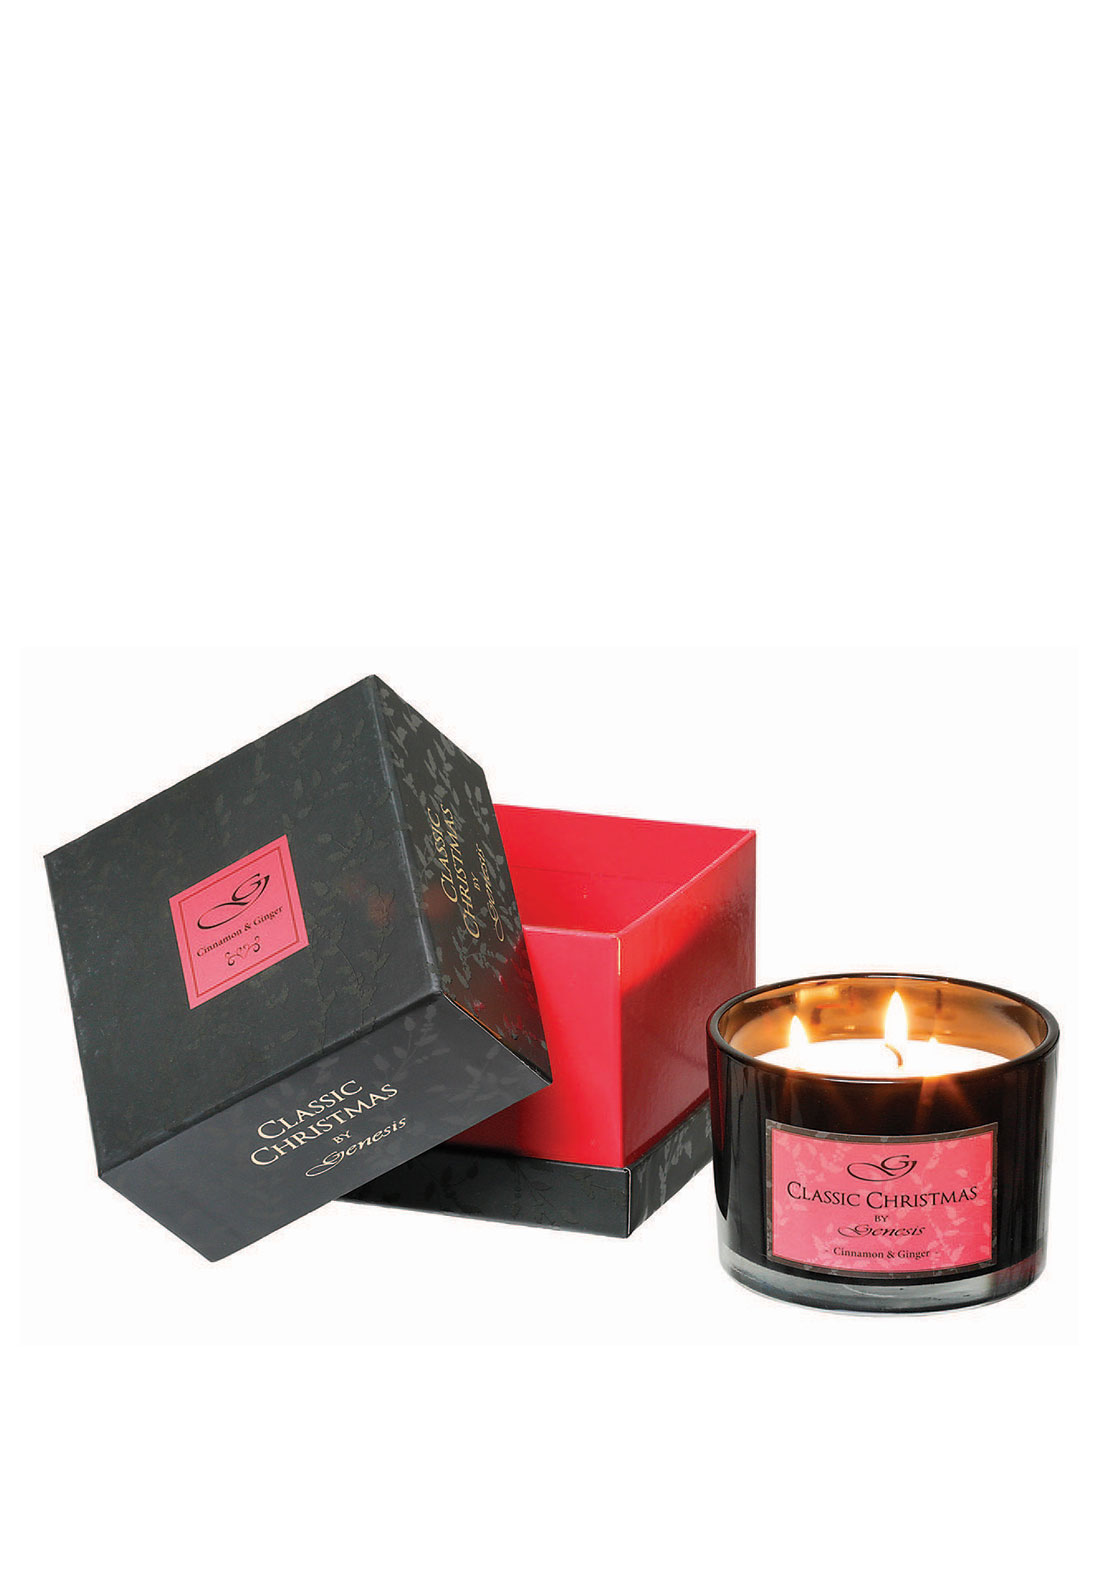 Genesis Classic Christmas Candle, Cinnamon & Ginger